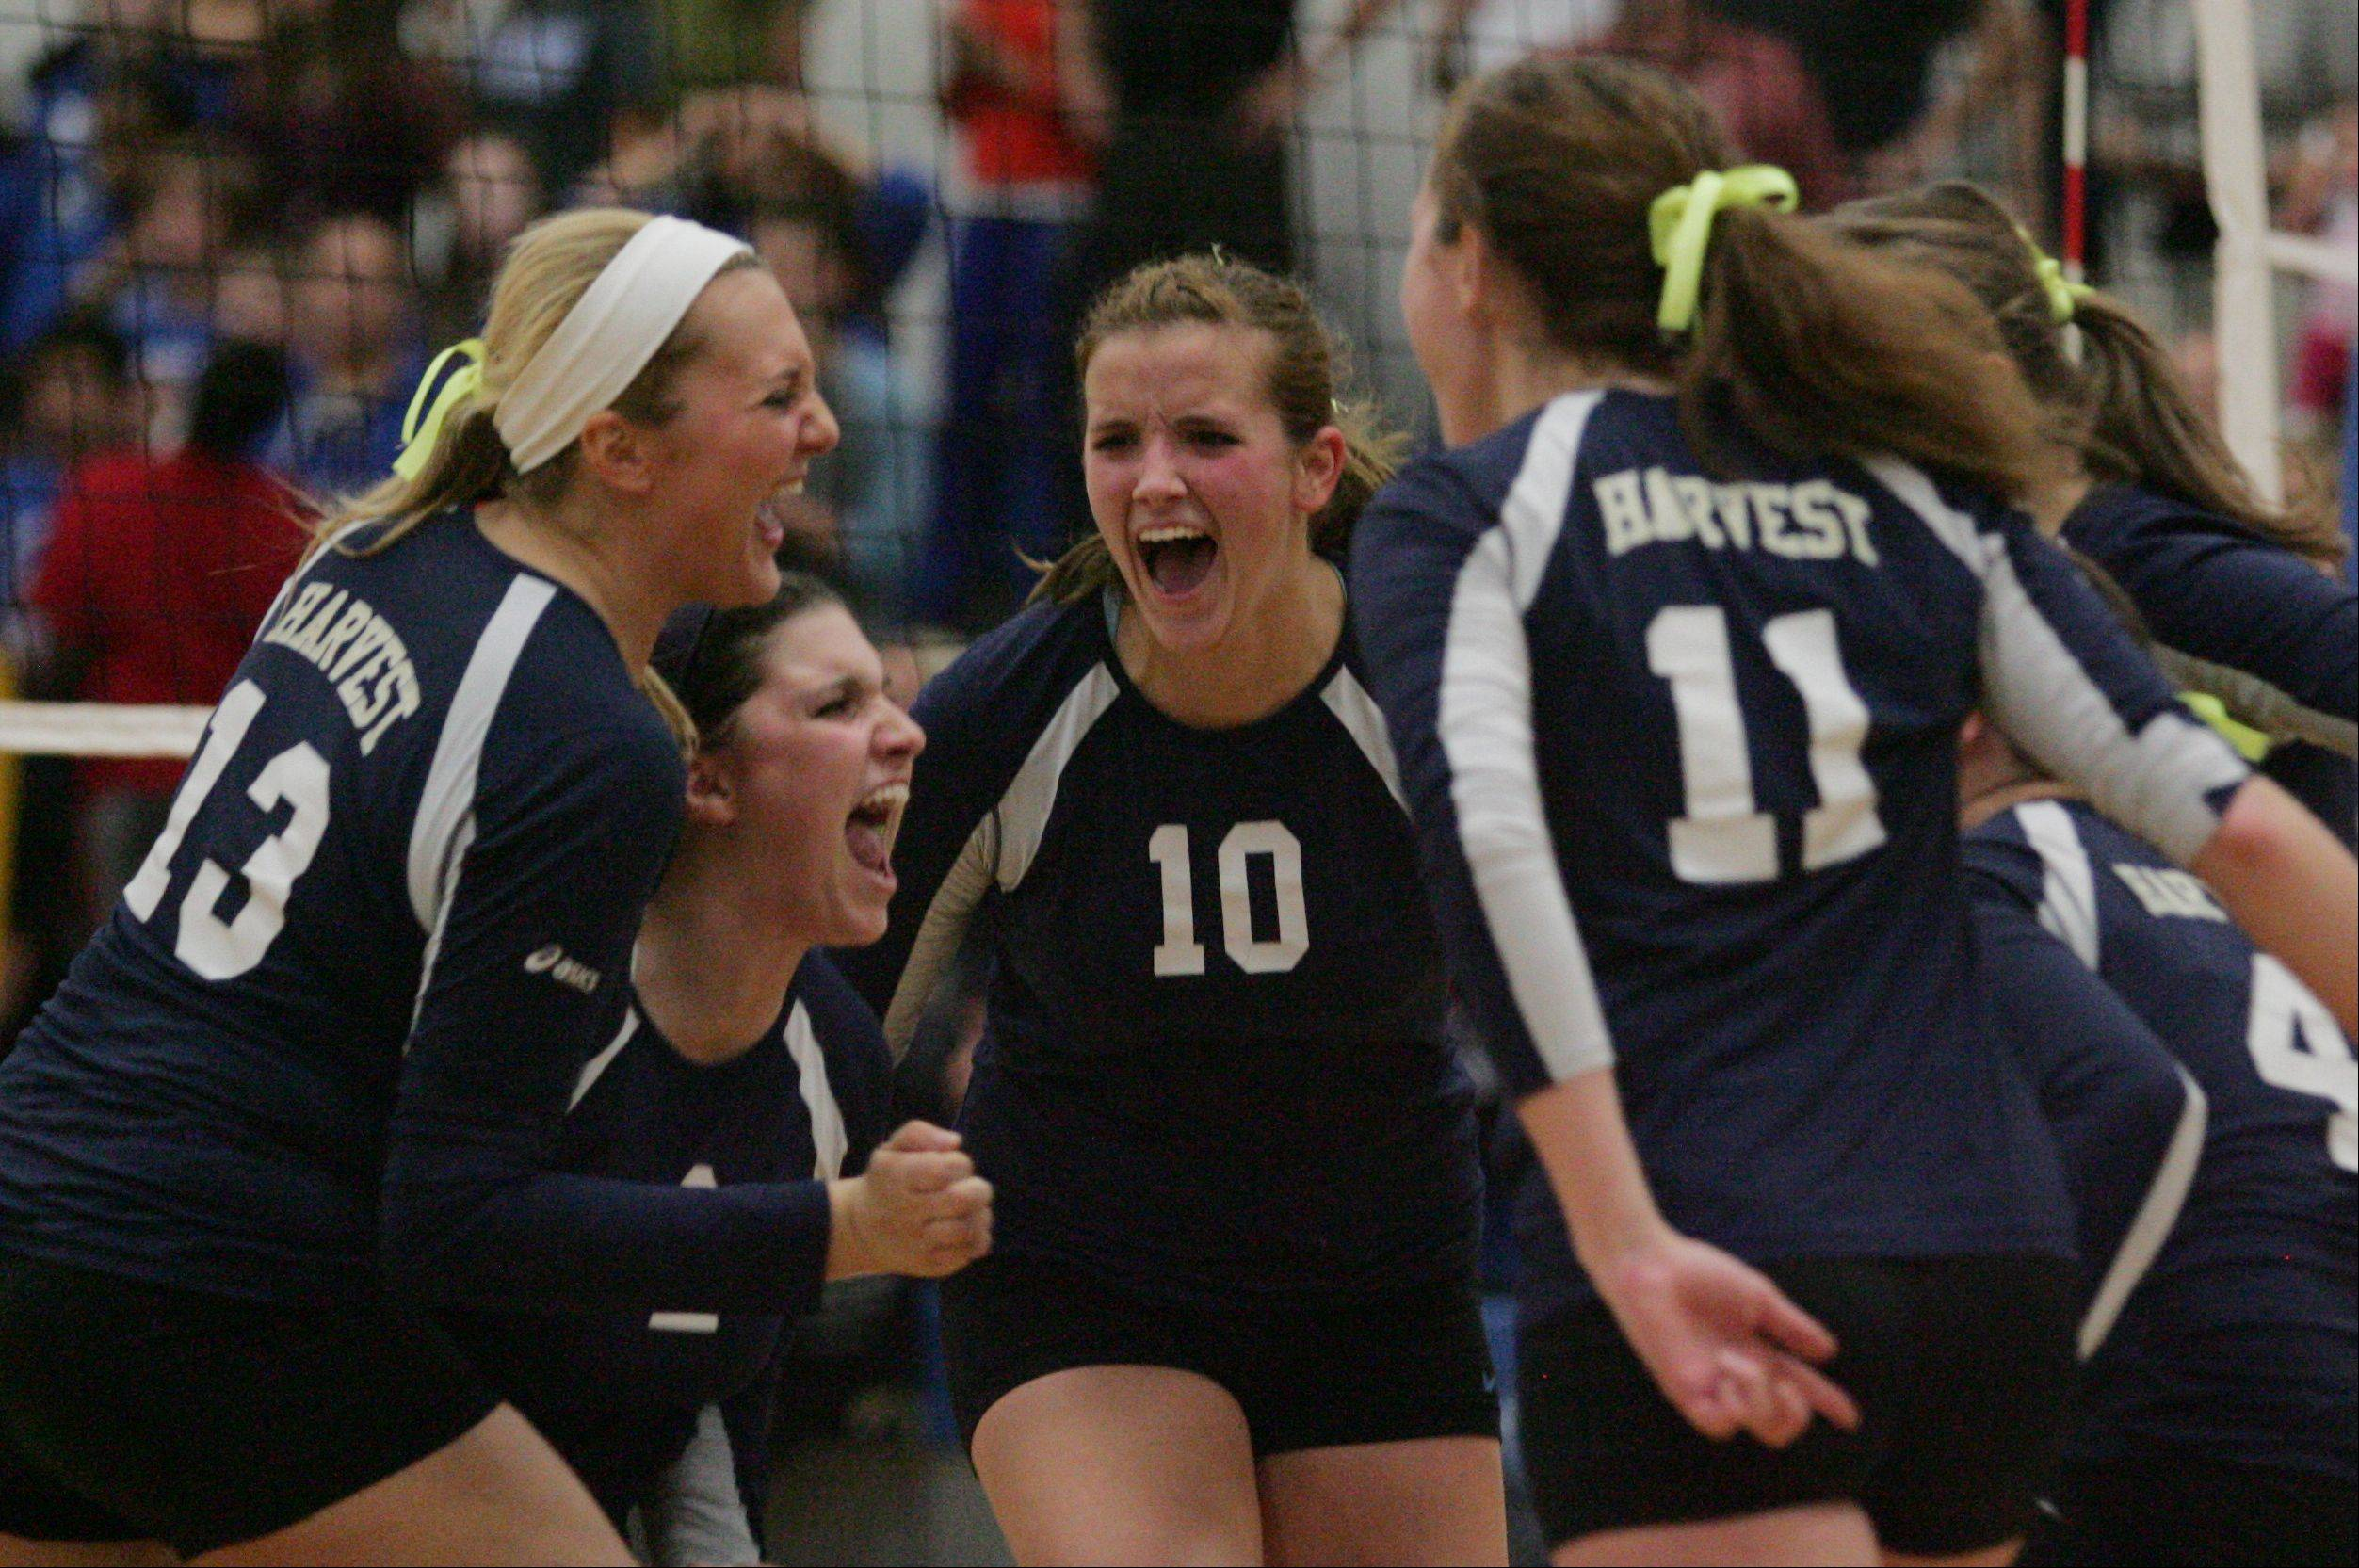 Harvest Christian volleyball players Erica Manusos, left, Jordan Sollars, Sydney Doby and Chloe Corbett celebrate their match-winning point Thursday night against Westminster Christian in the Class 1A regional final at Westminster.